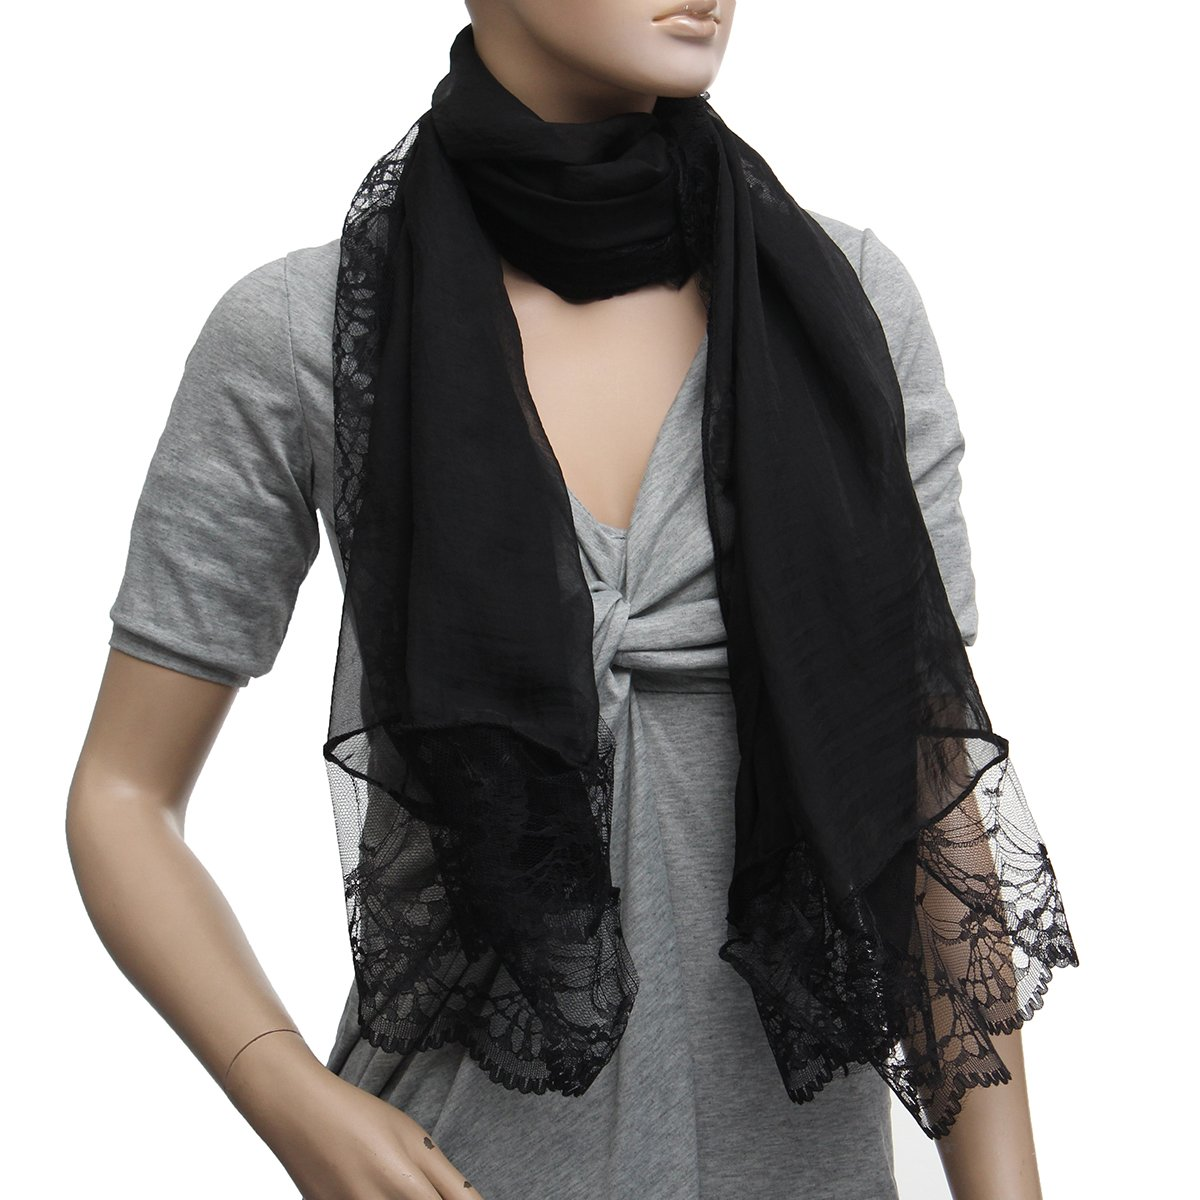 Discover the elegance of a Lace Scarf, Women's Lace Scarf, and Juniors Lace Scarf at Macy's. Macy's Presents: The Edit - A curated mix of fashion and inspiration Check It Out Free Shipping with $99 purchase + Free Store Pickup.